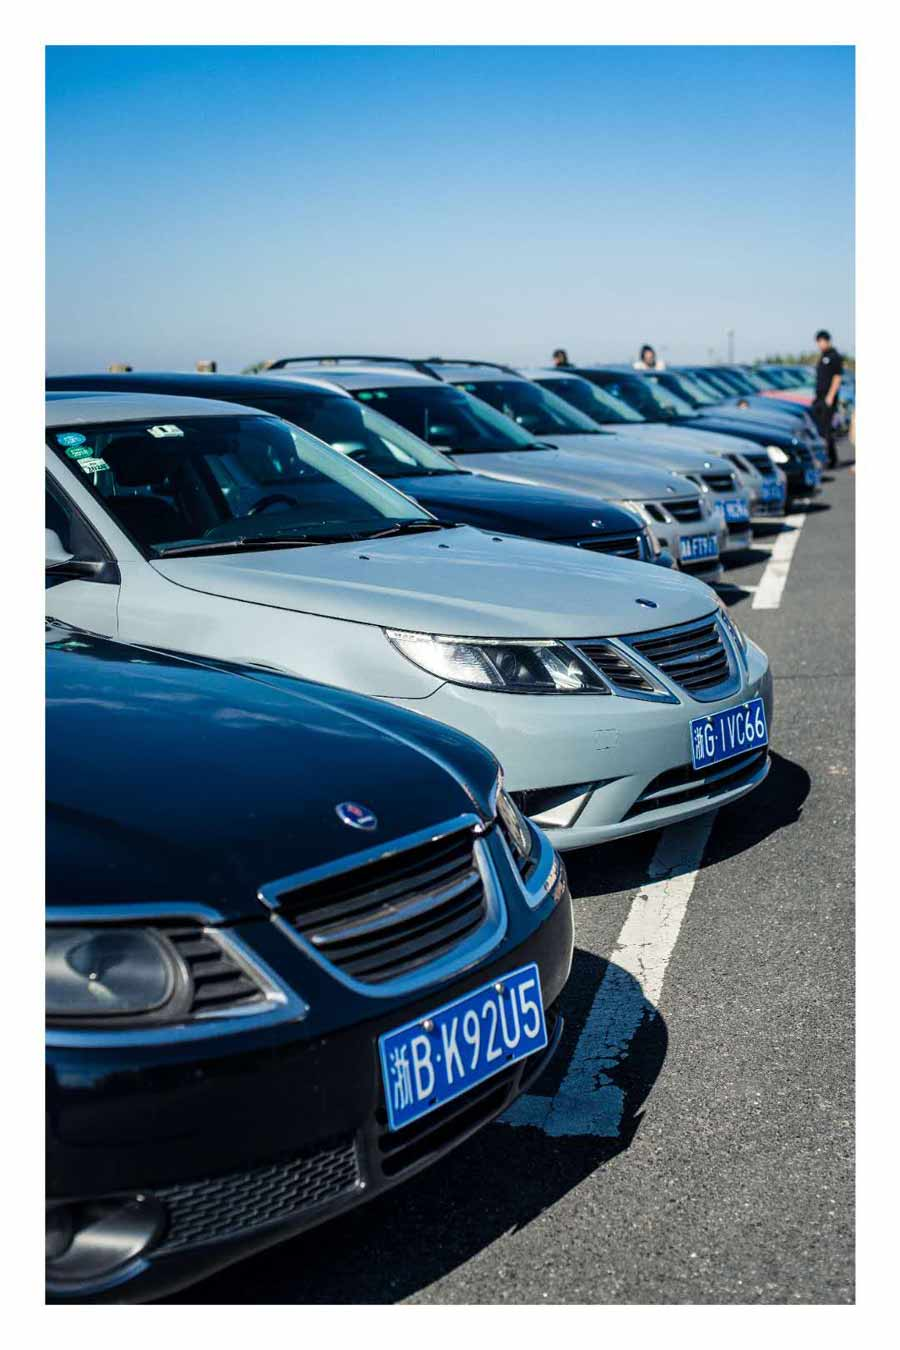 Over 20 Saab cars on the borders of China and North Korea